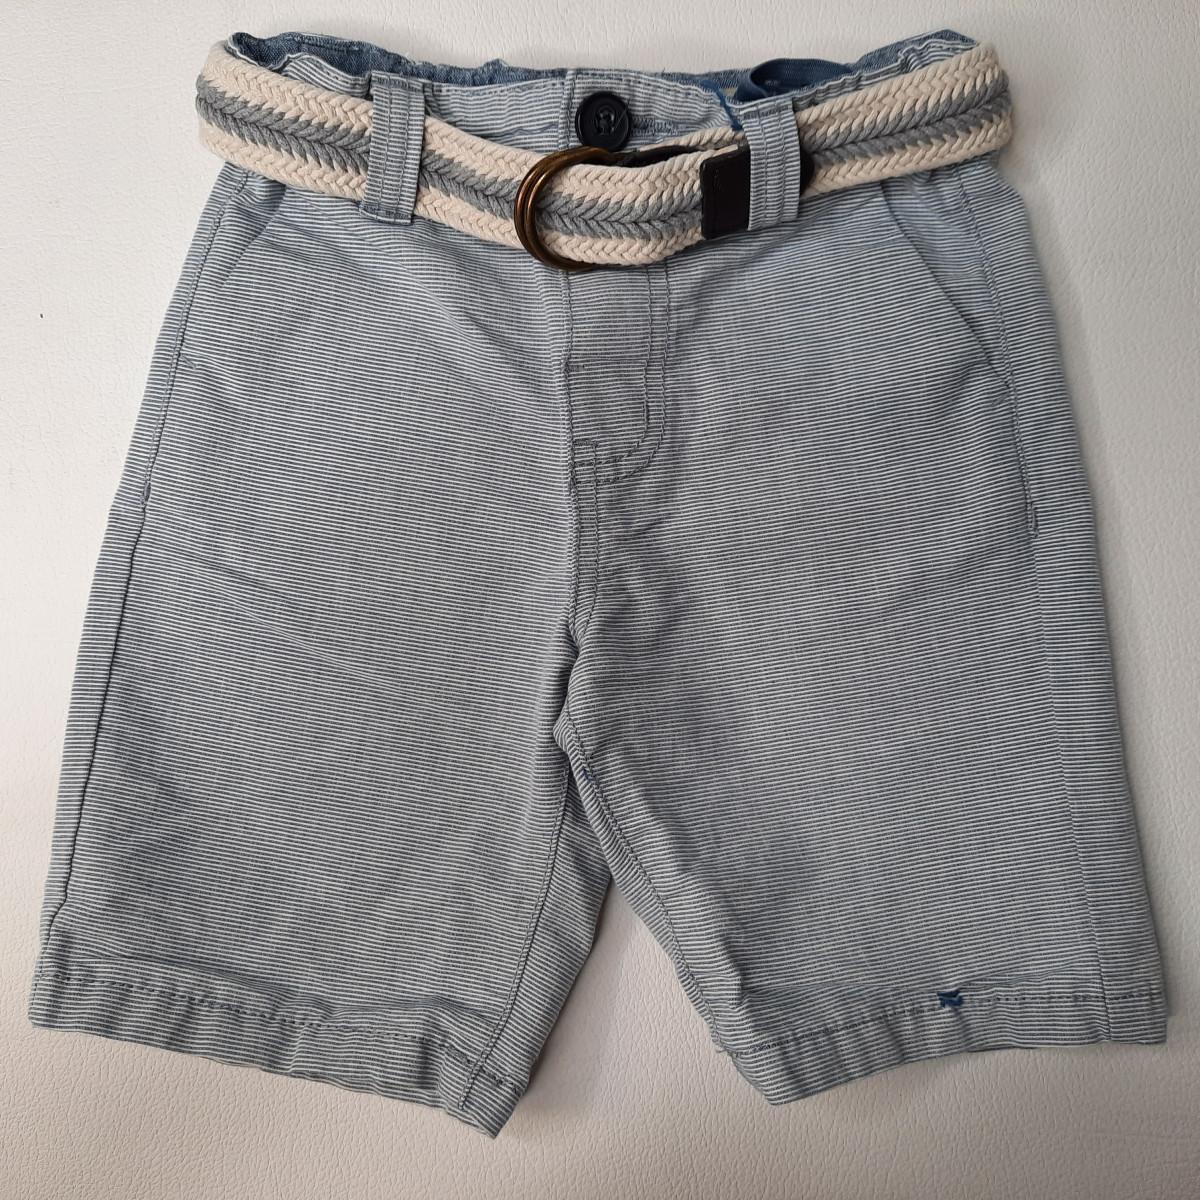 Shorts, Bermudas - photo 14